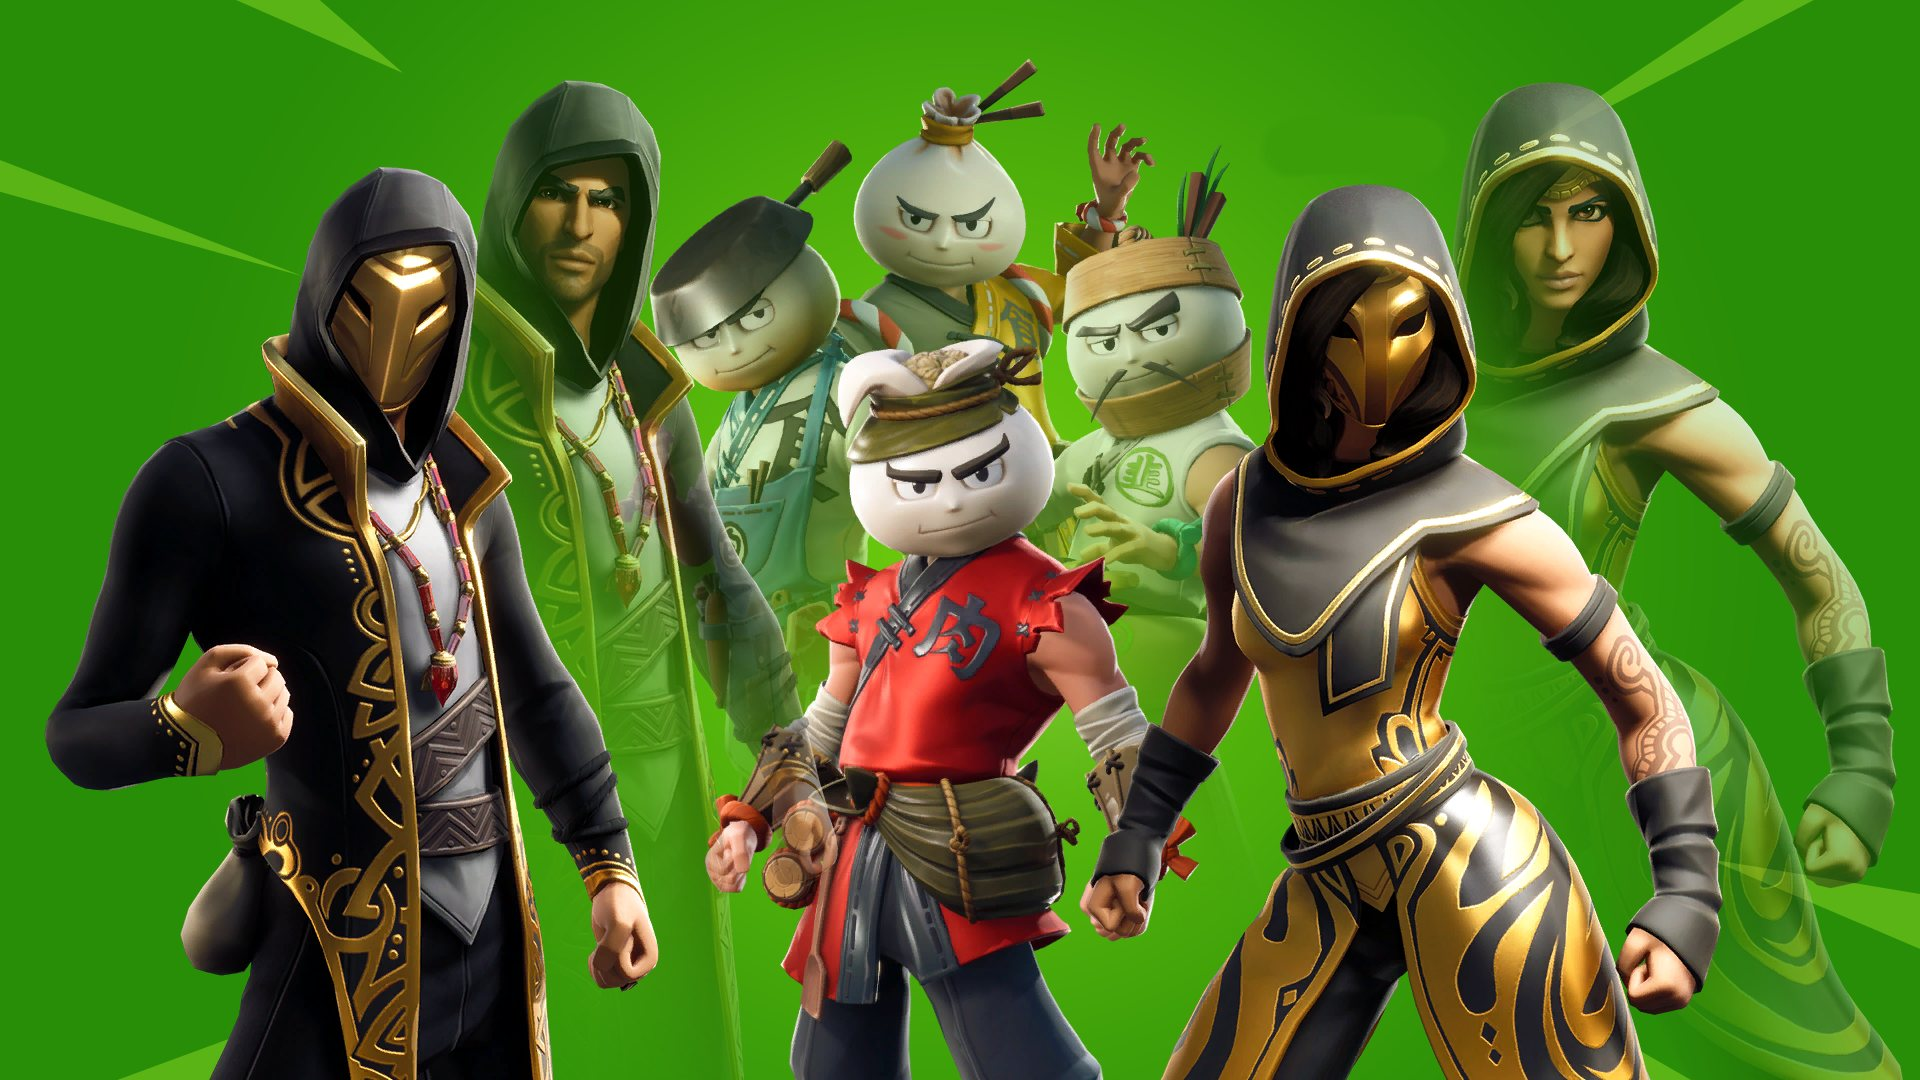 Fortnite Season 9 Skins HD Wallpaper